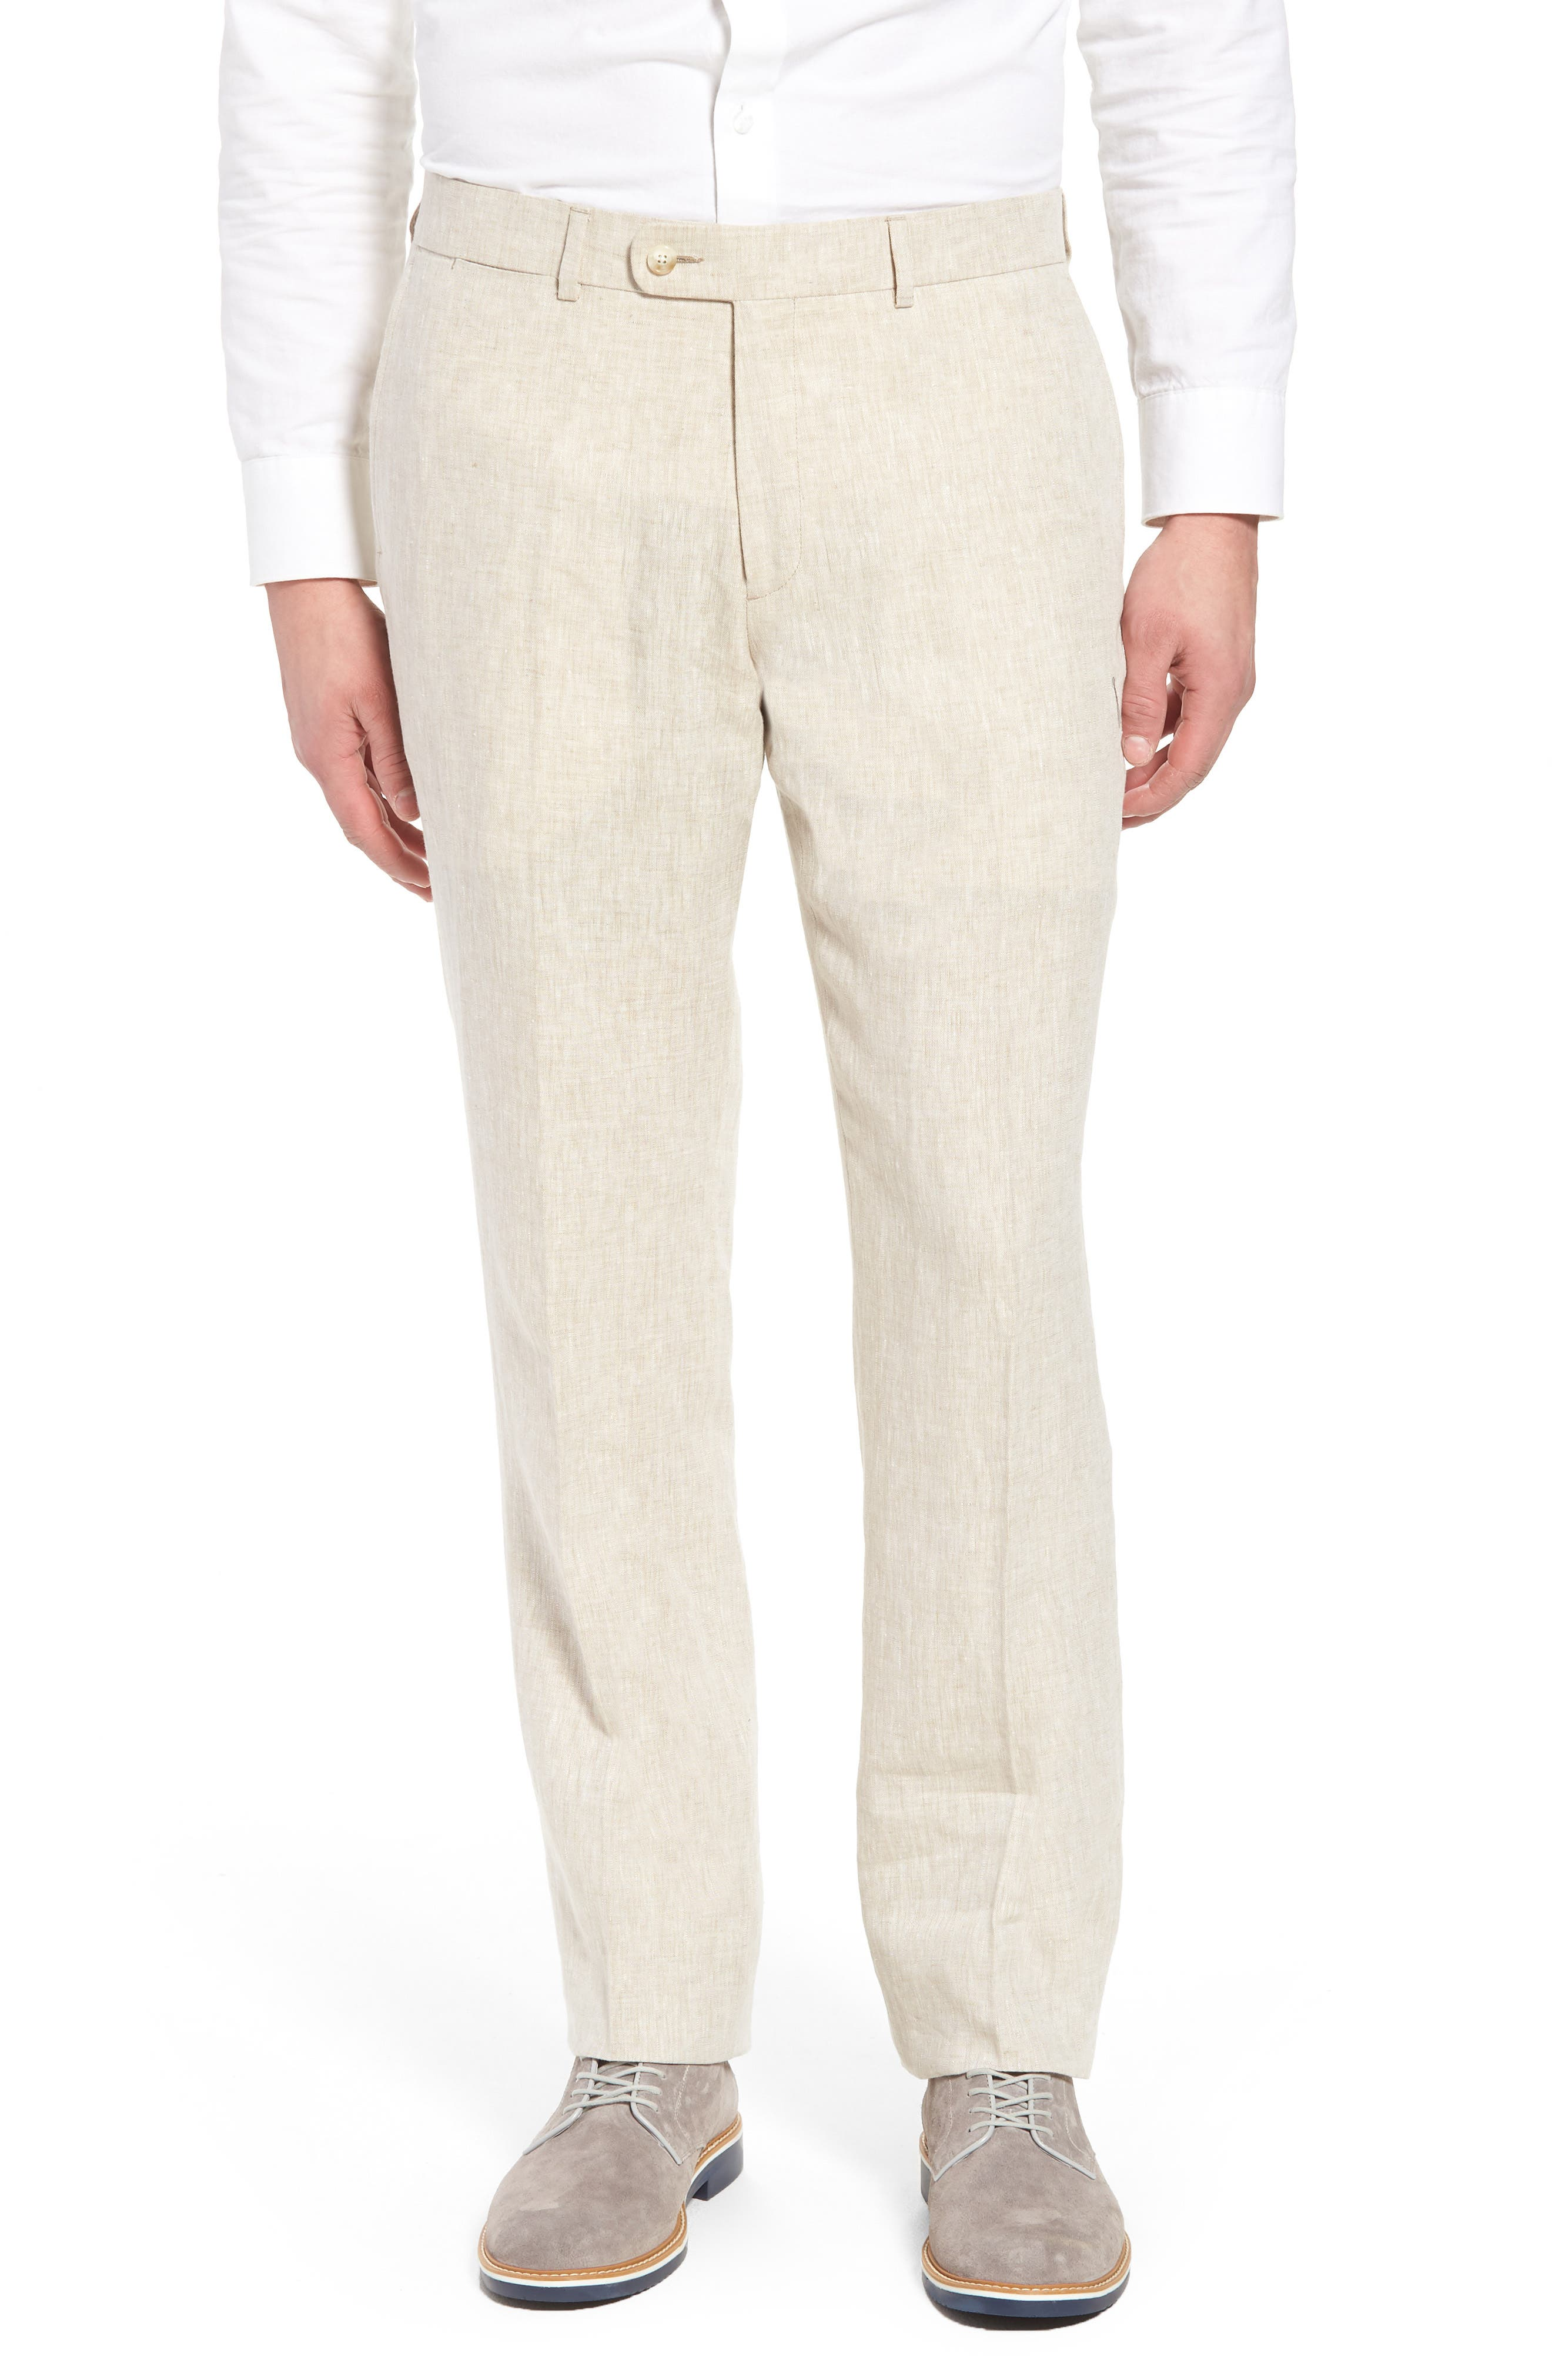 Andrew AIM Flat Front Linen Trousers,                             Main thumbnail 1, color,                             Natural